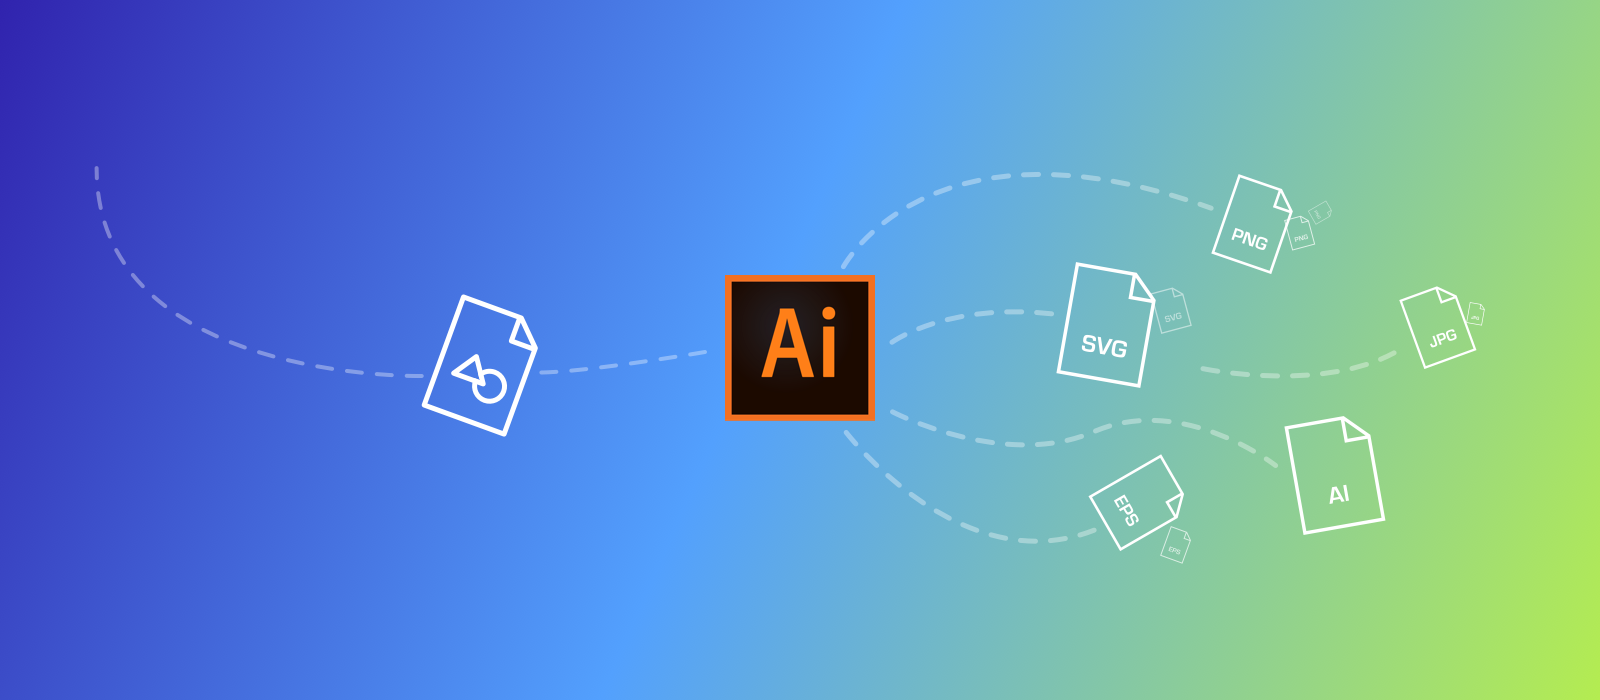 1600x700 How To Export Vector Icons To Multiple Sizes And Formats In Adobe